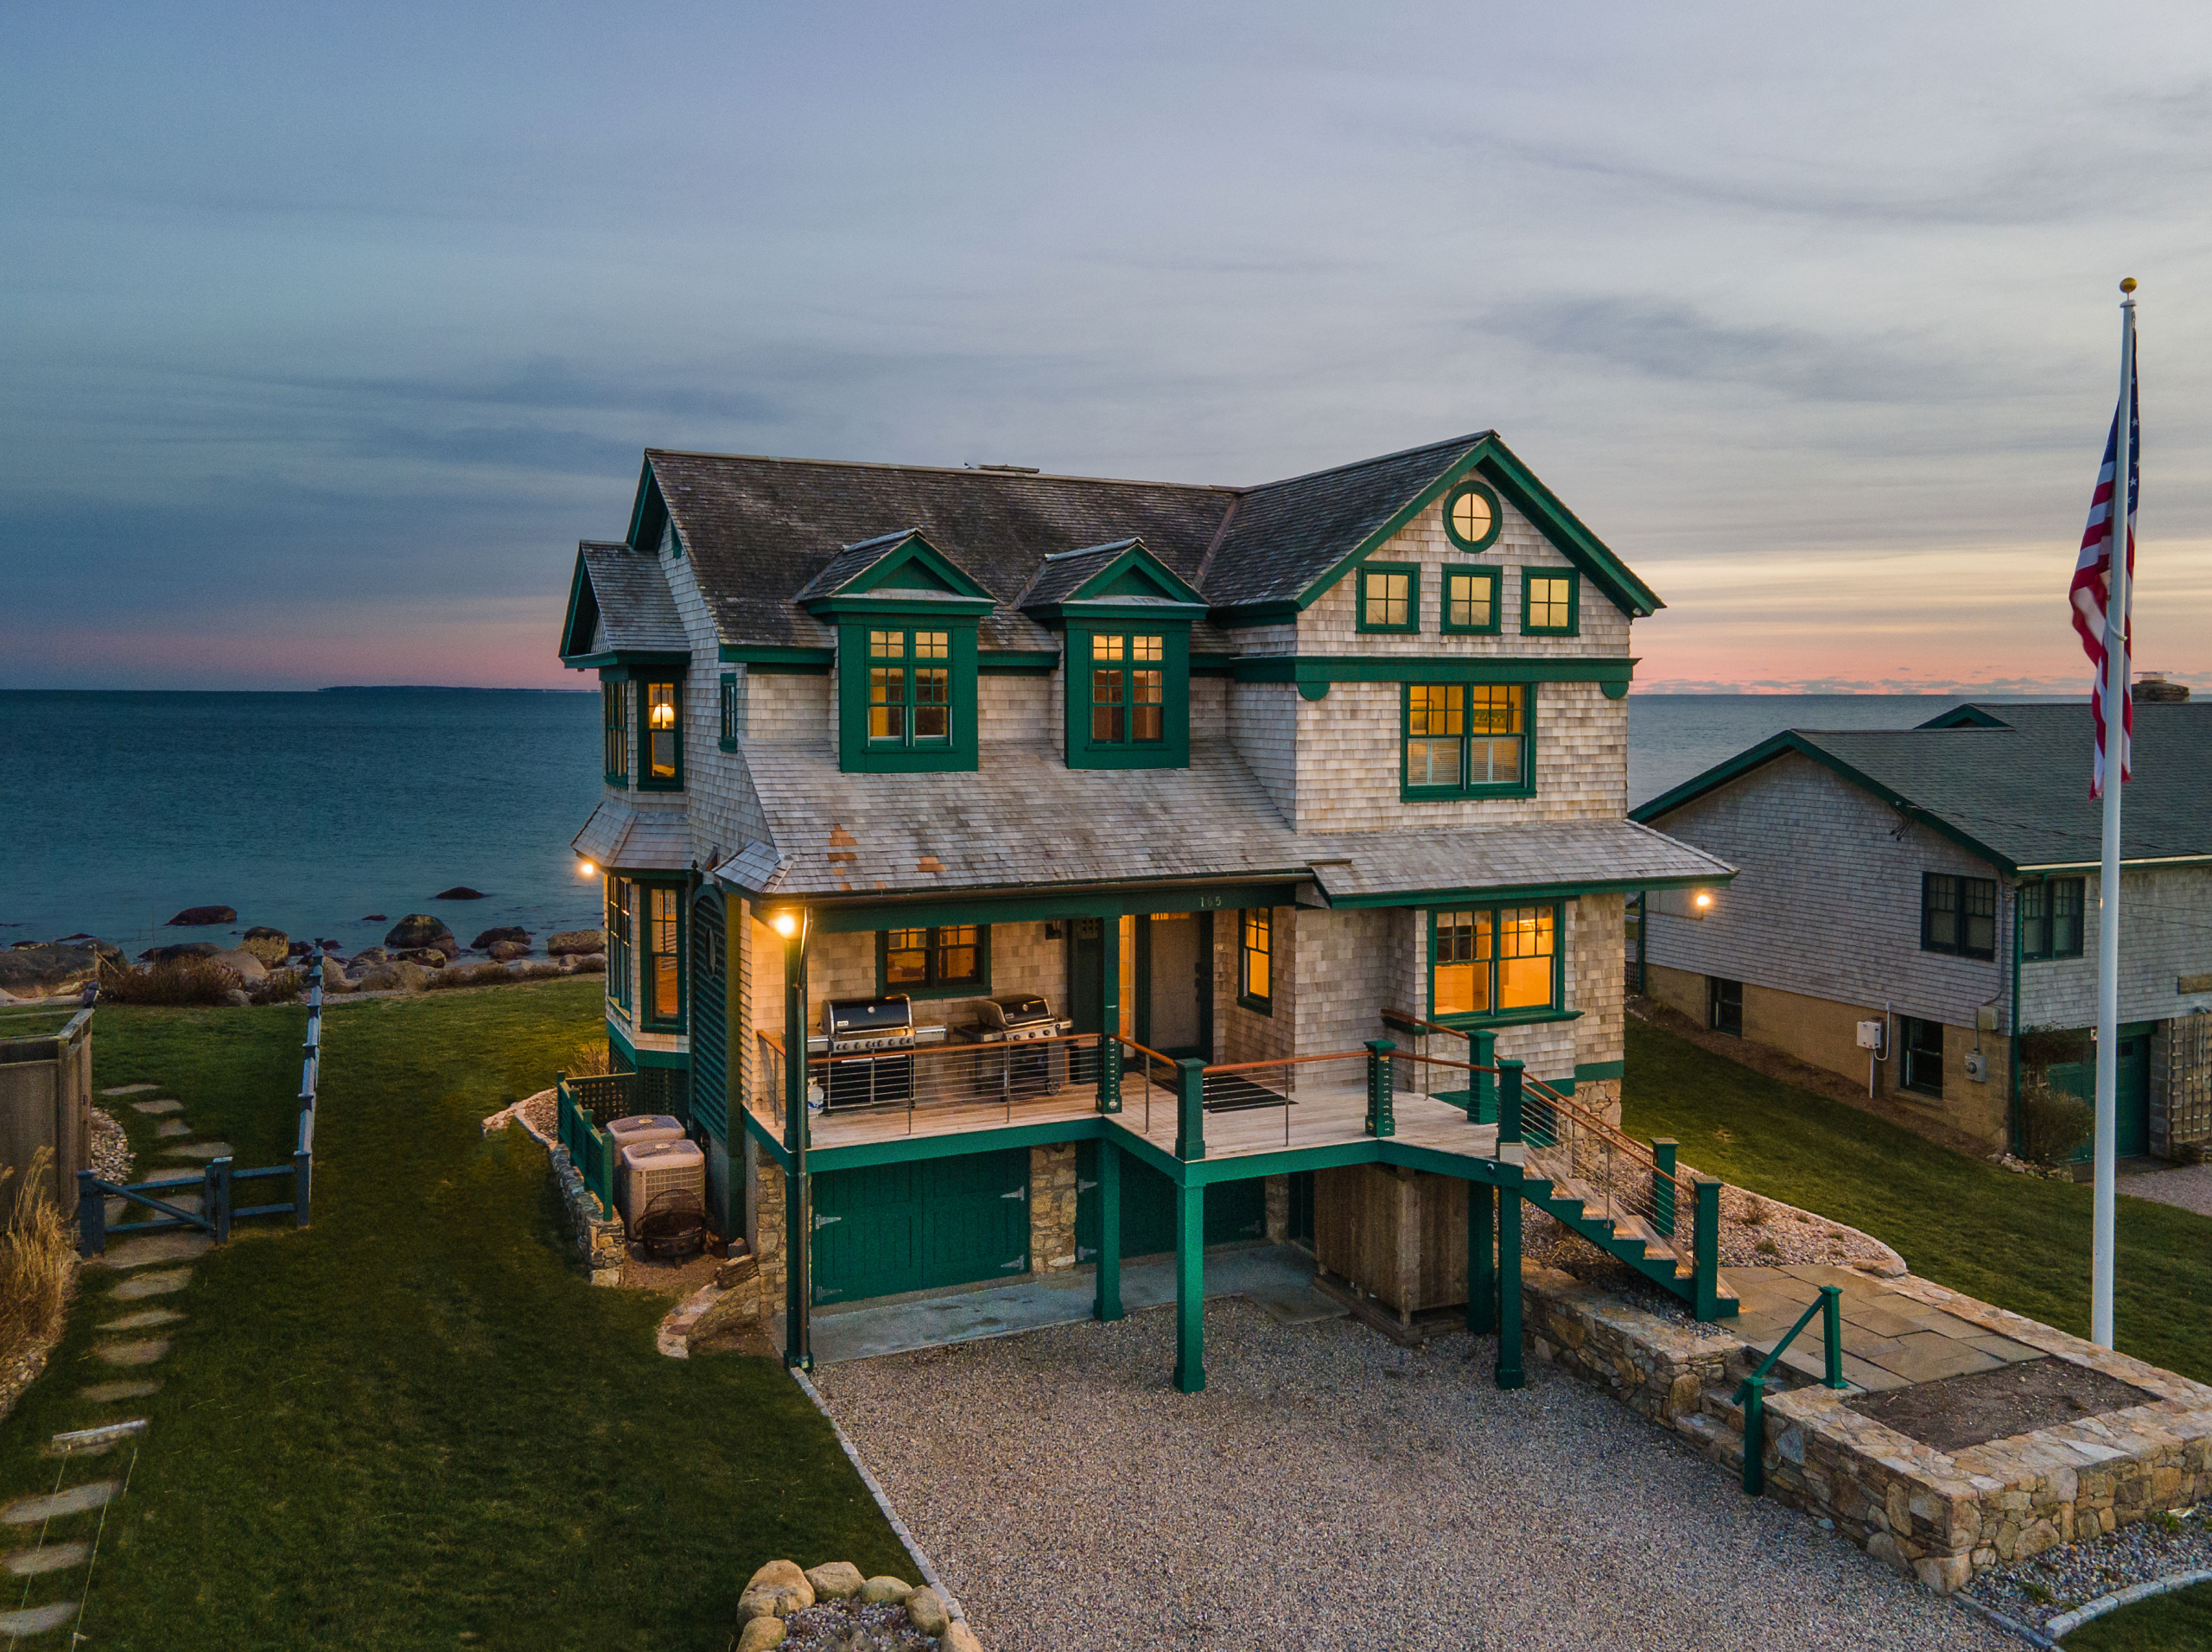 OCEAN FRONT HOME IN CHARLESTOWN SELLS FOR $3.65M,  MARKING HIGHEST SALE IN THE MUNICIPALITY YEAR-TO-DATE*